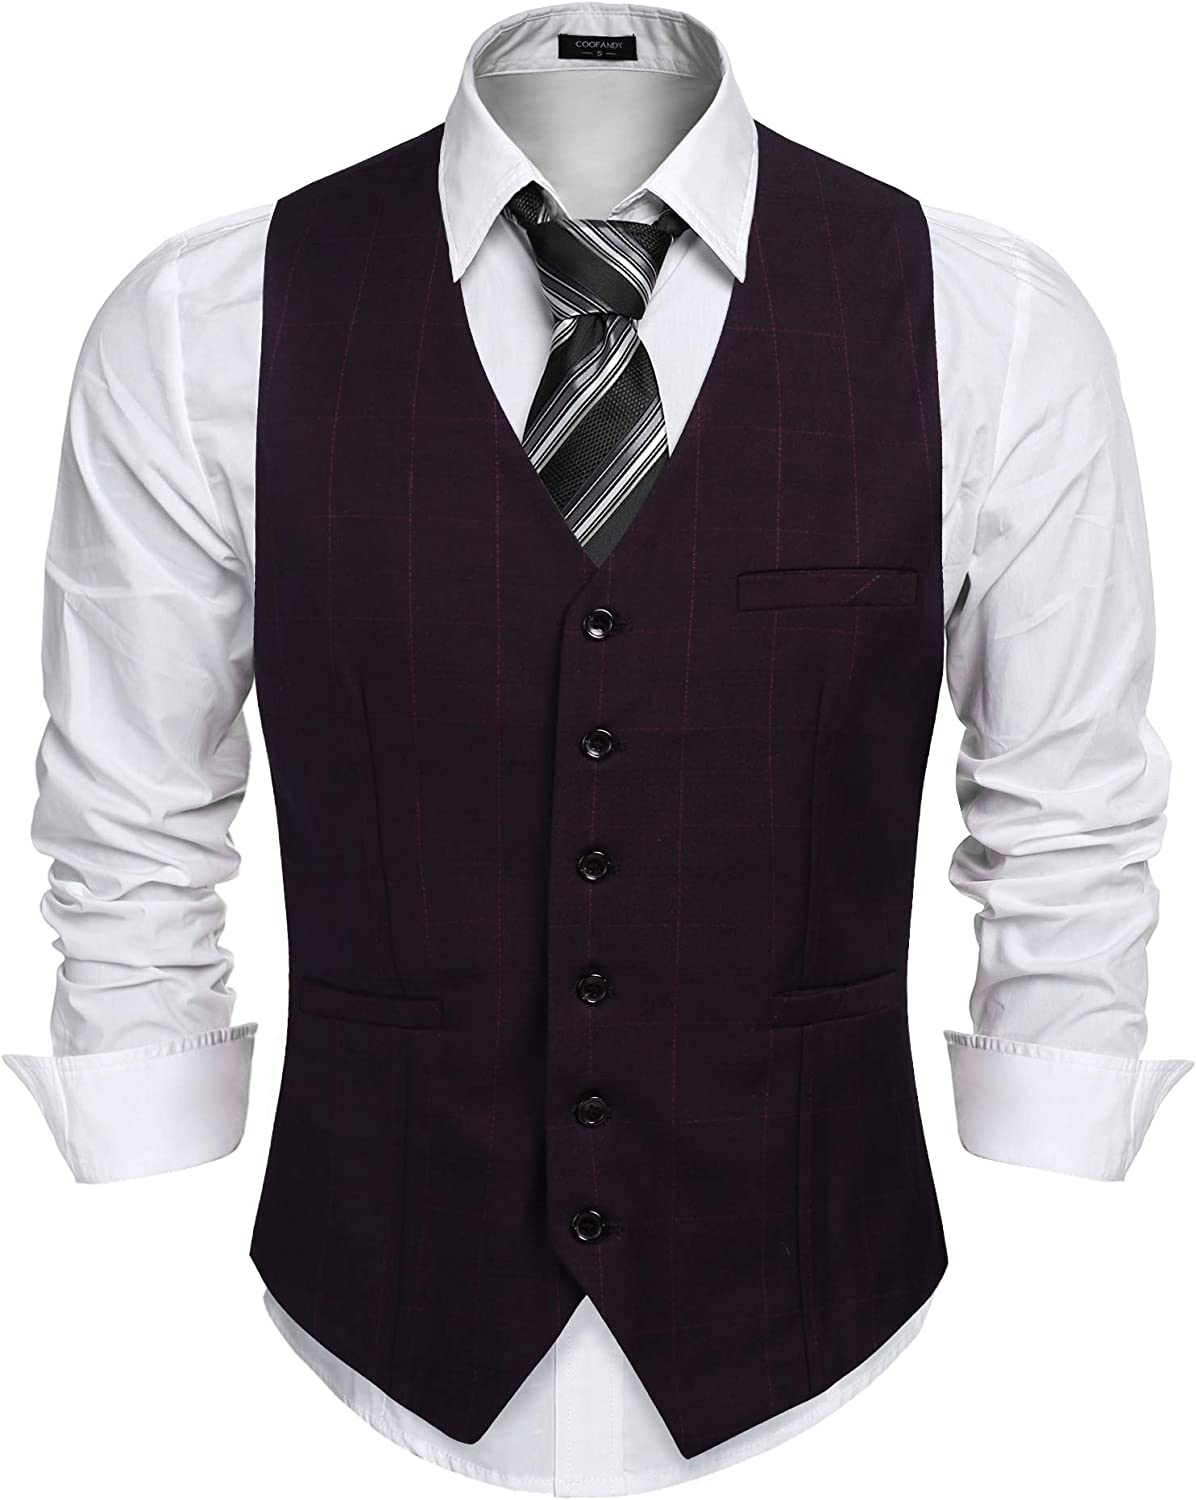 COOFANDY Men's Suit Vest Business Formal Dress Waistcoat Vest 6 Button Wool Vest